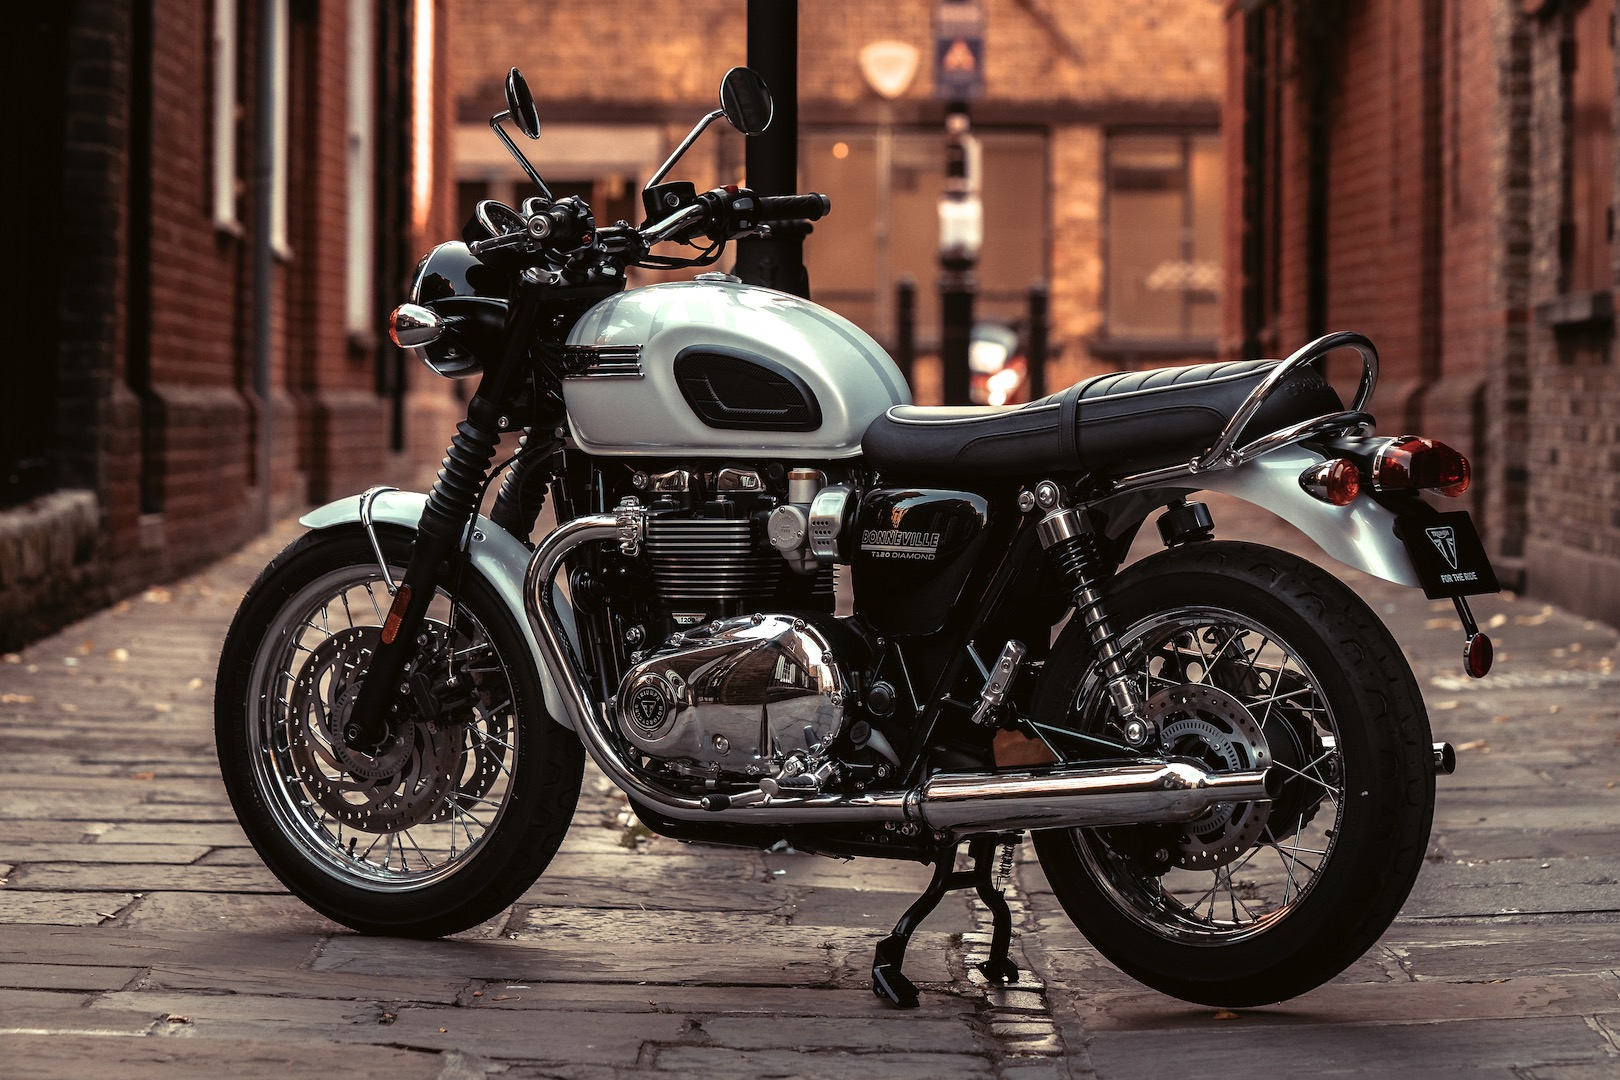 2019 Triumph Bonneville T 120 Diamond Edition price